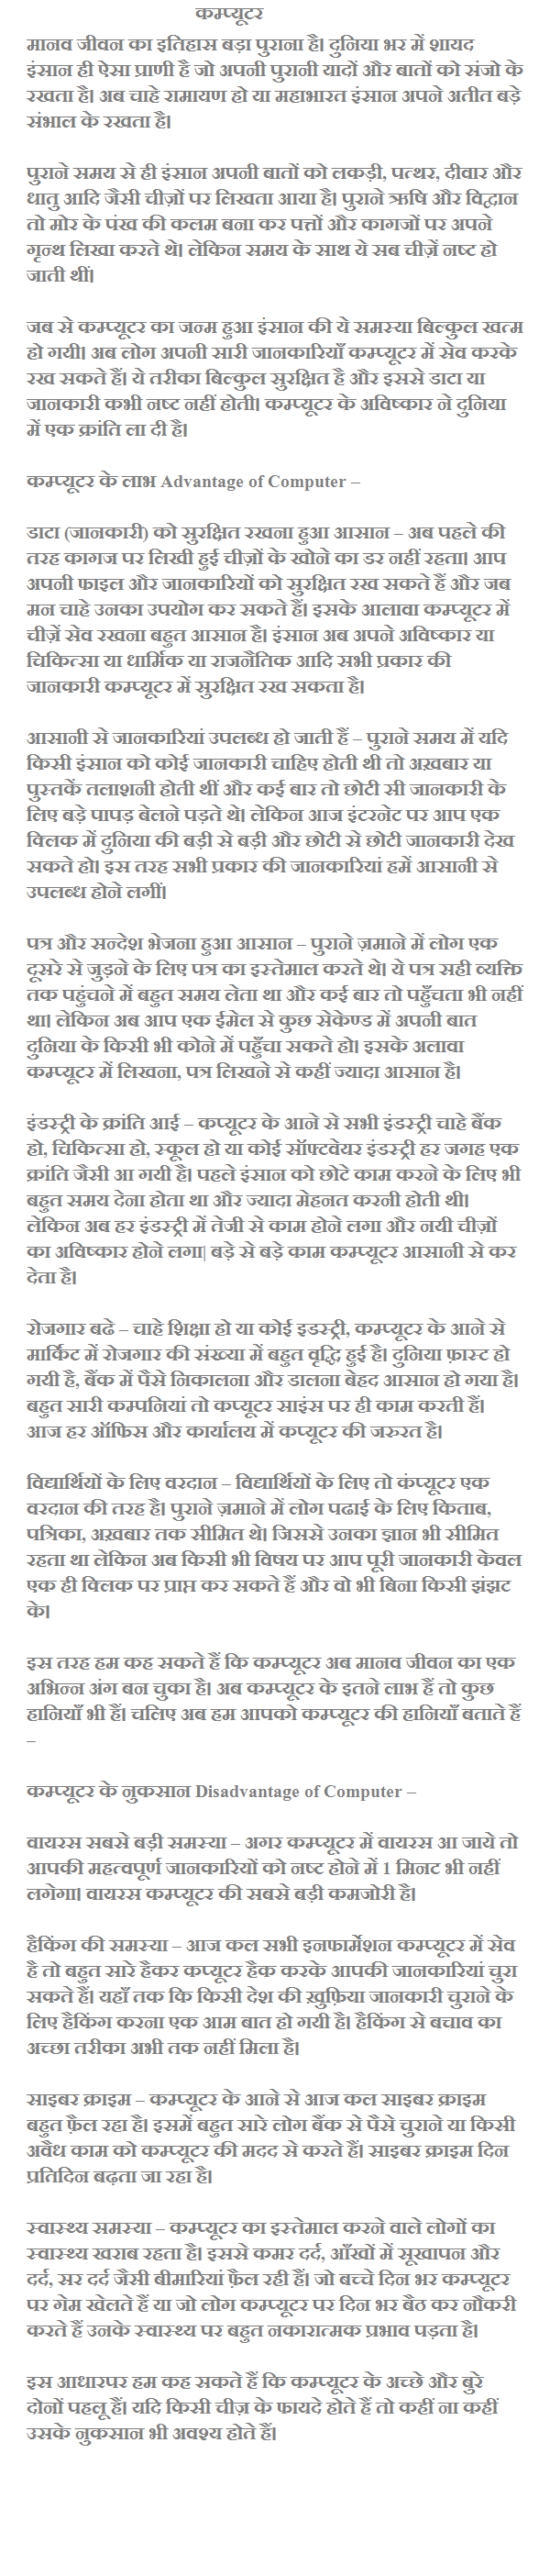 essay on computer in hindi language